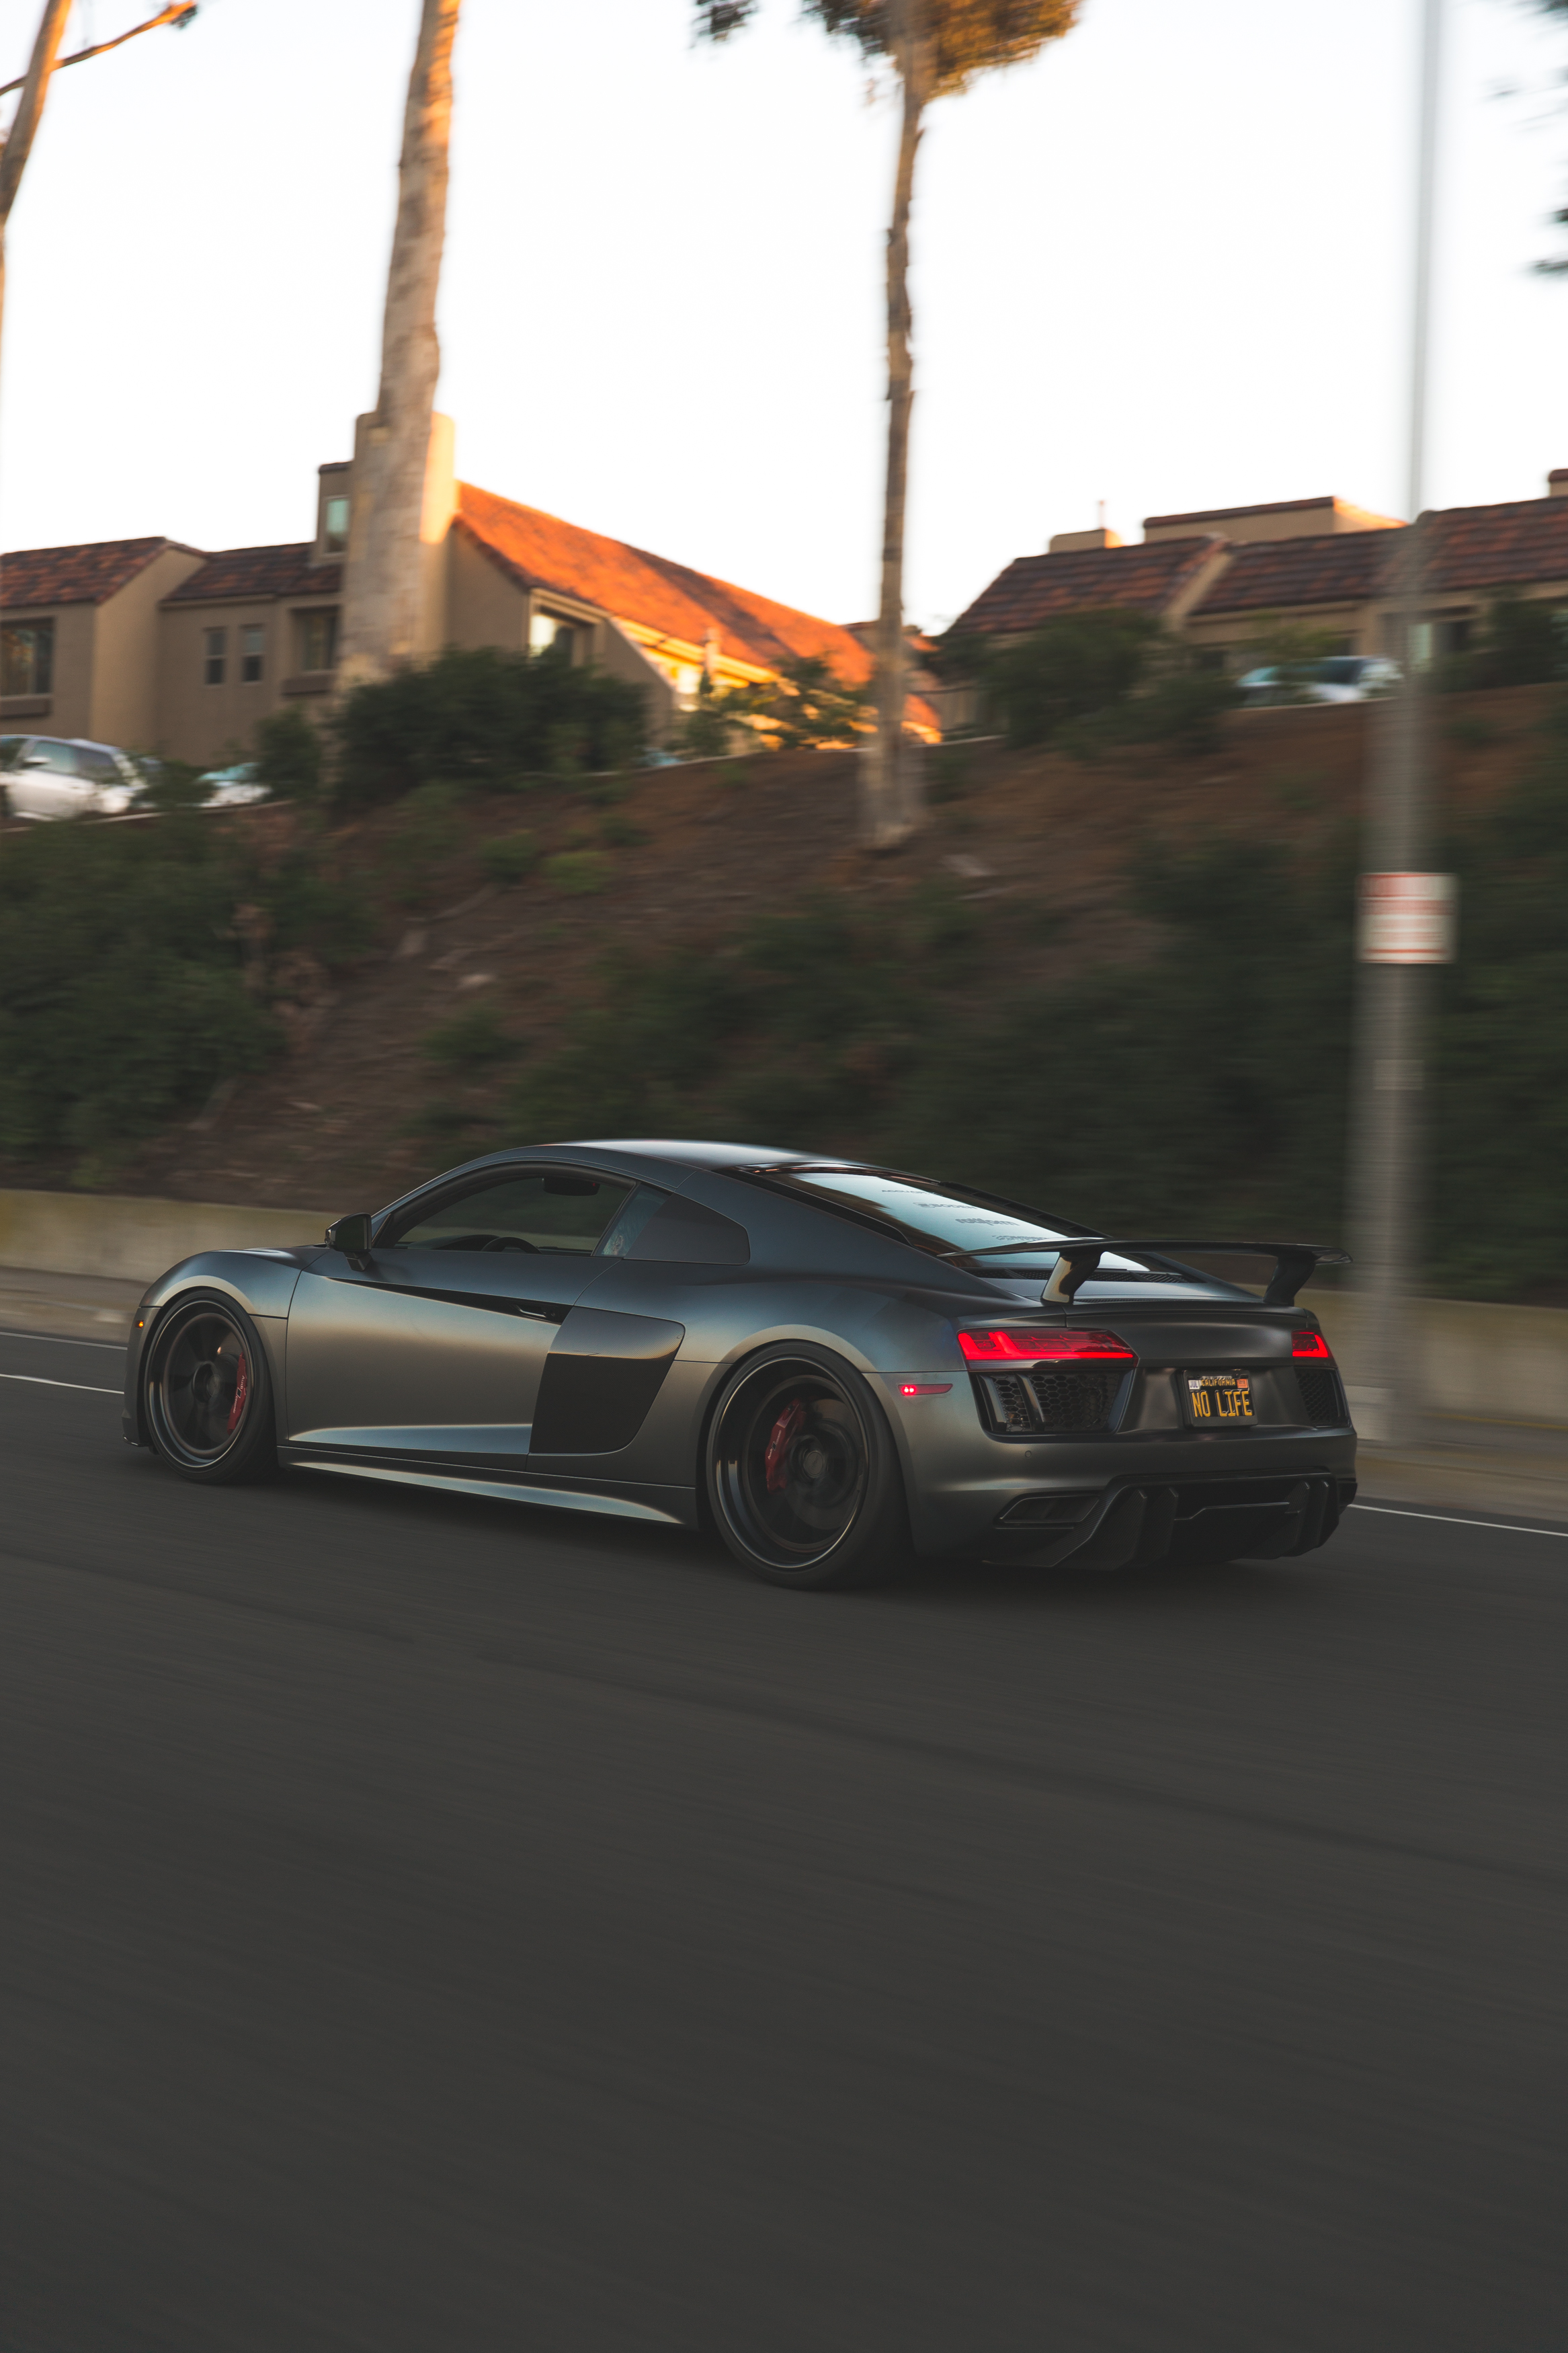 Stay_Driven_Page_R8_Newport-3.jpg